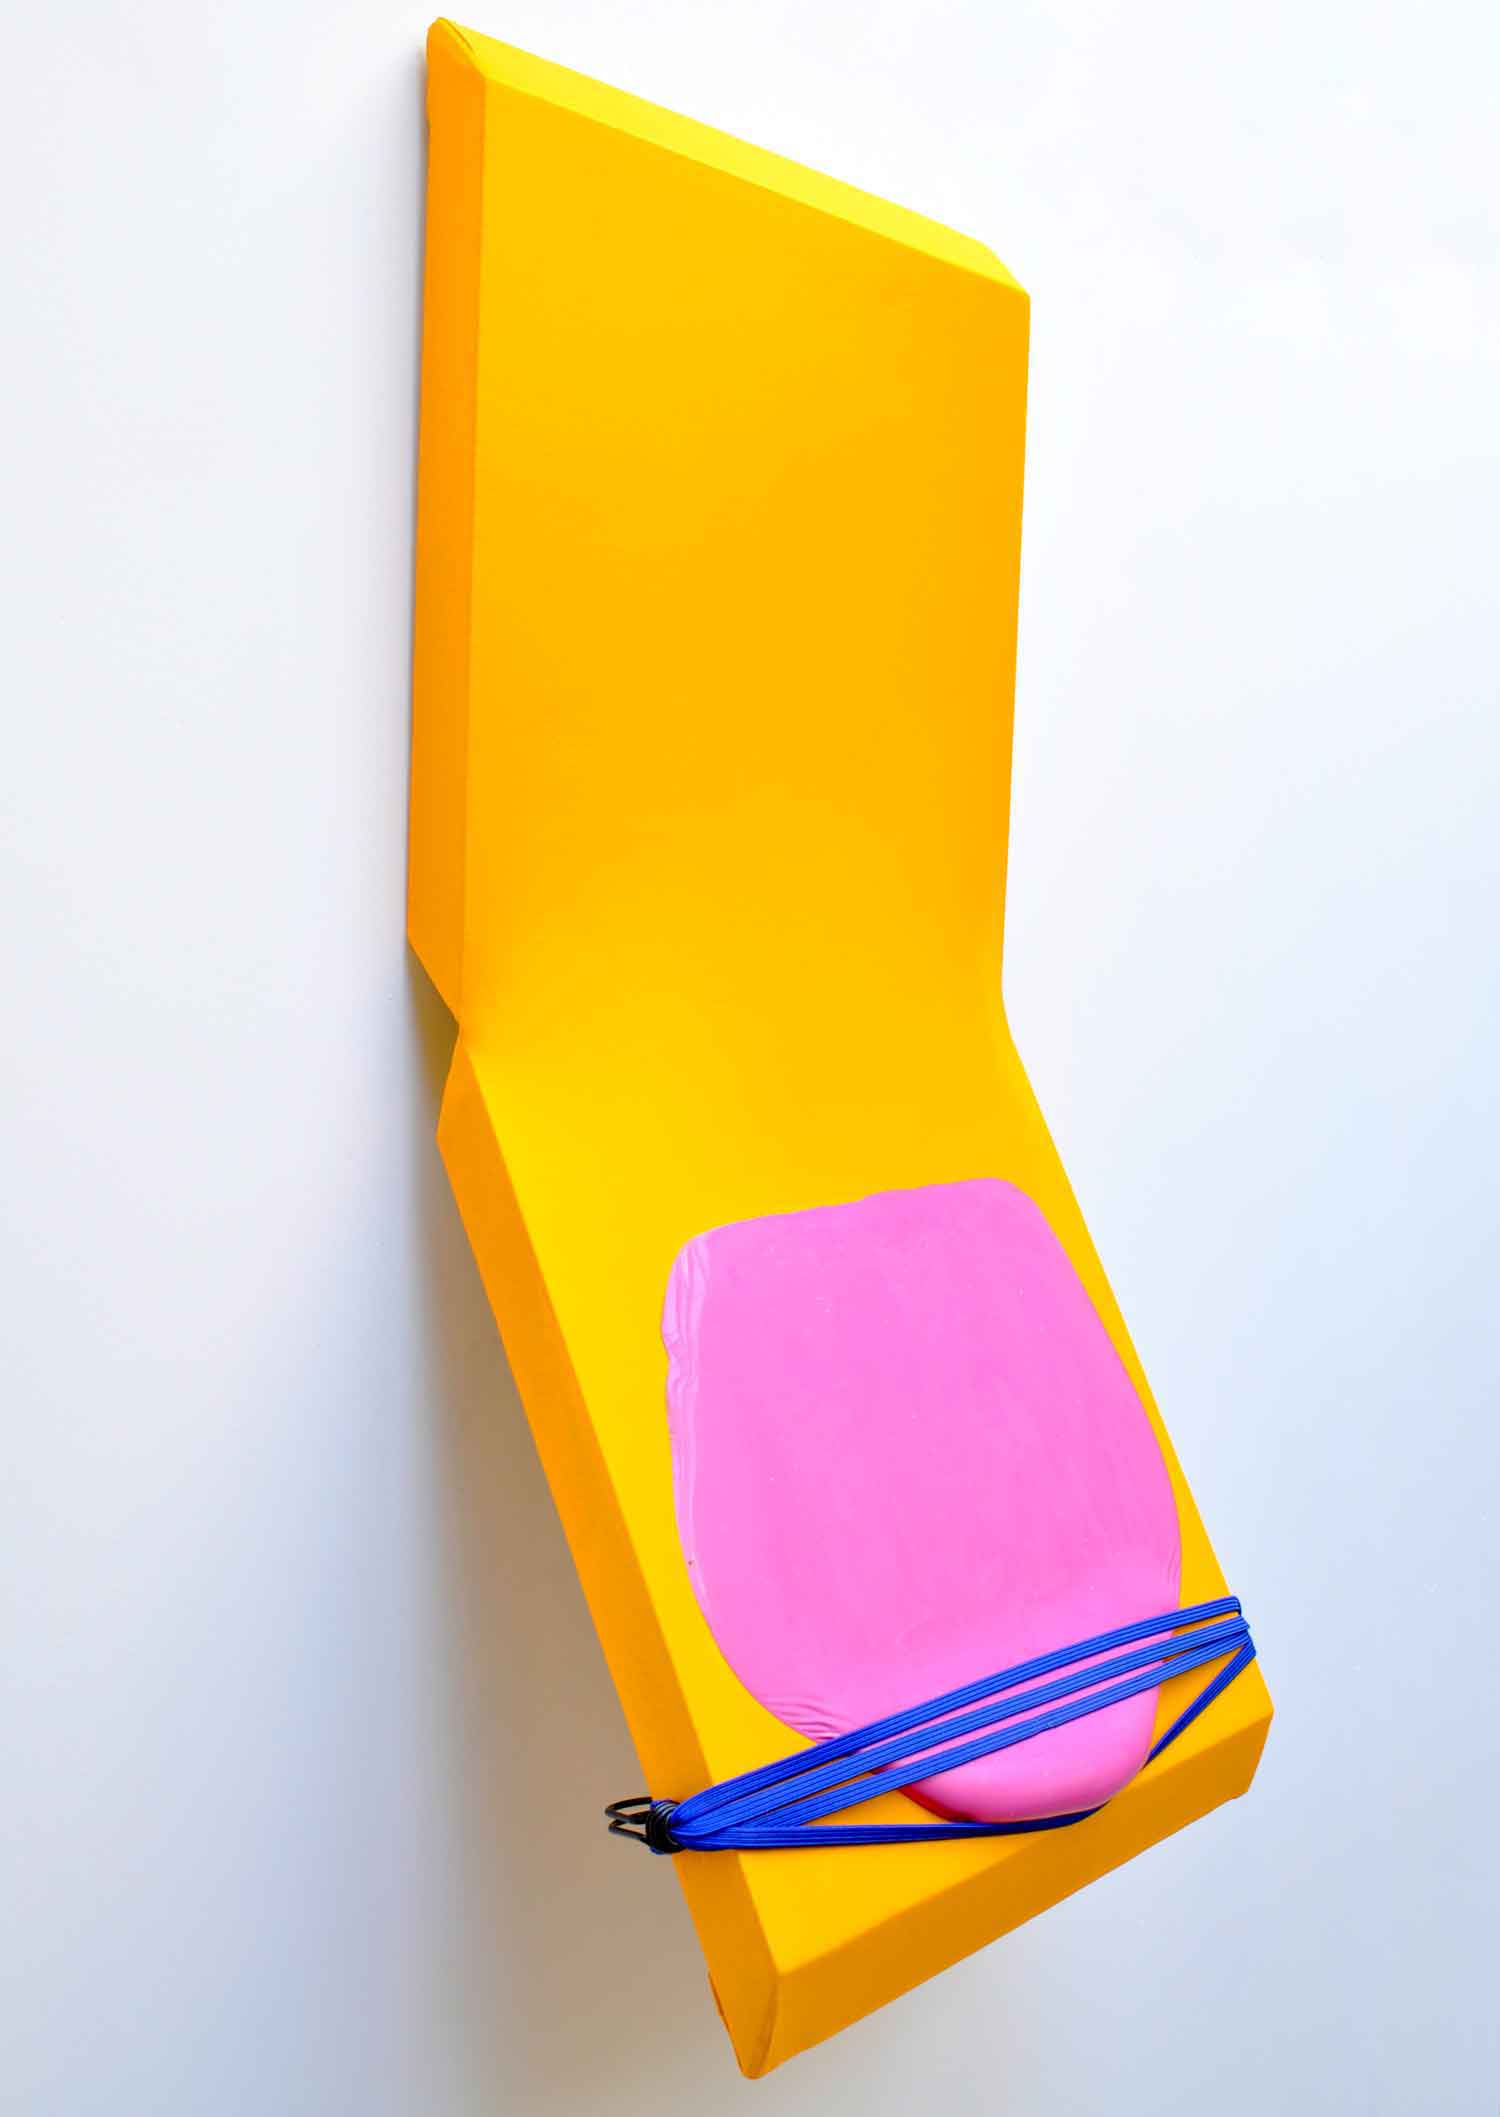 UNYIELDING COLOUR, 2016  Household paint on hinged canvas with elastic 90cm x 45cm x 25cm